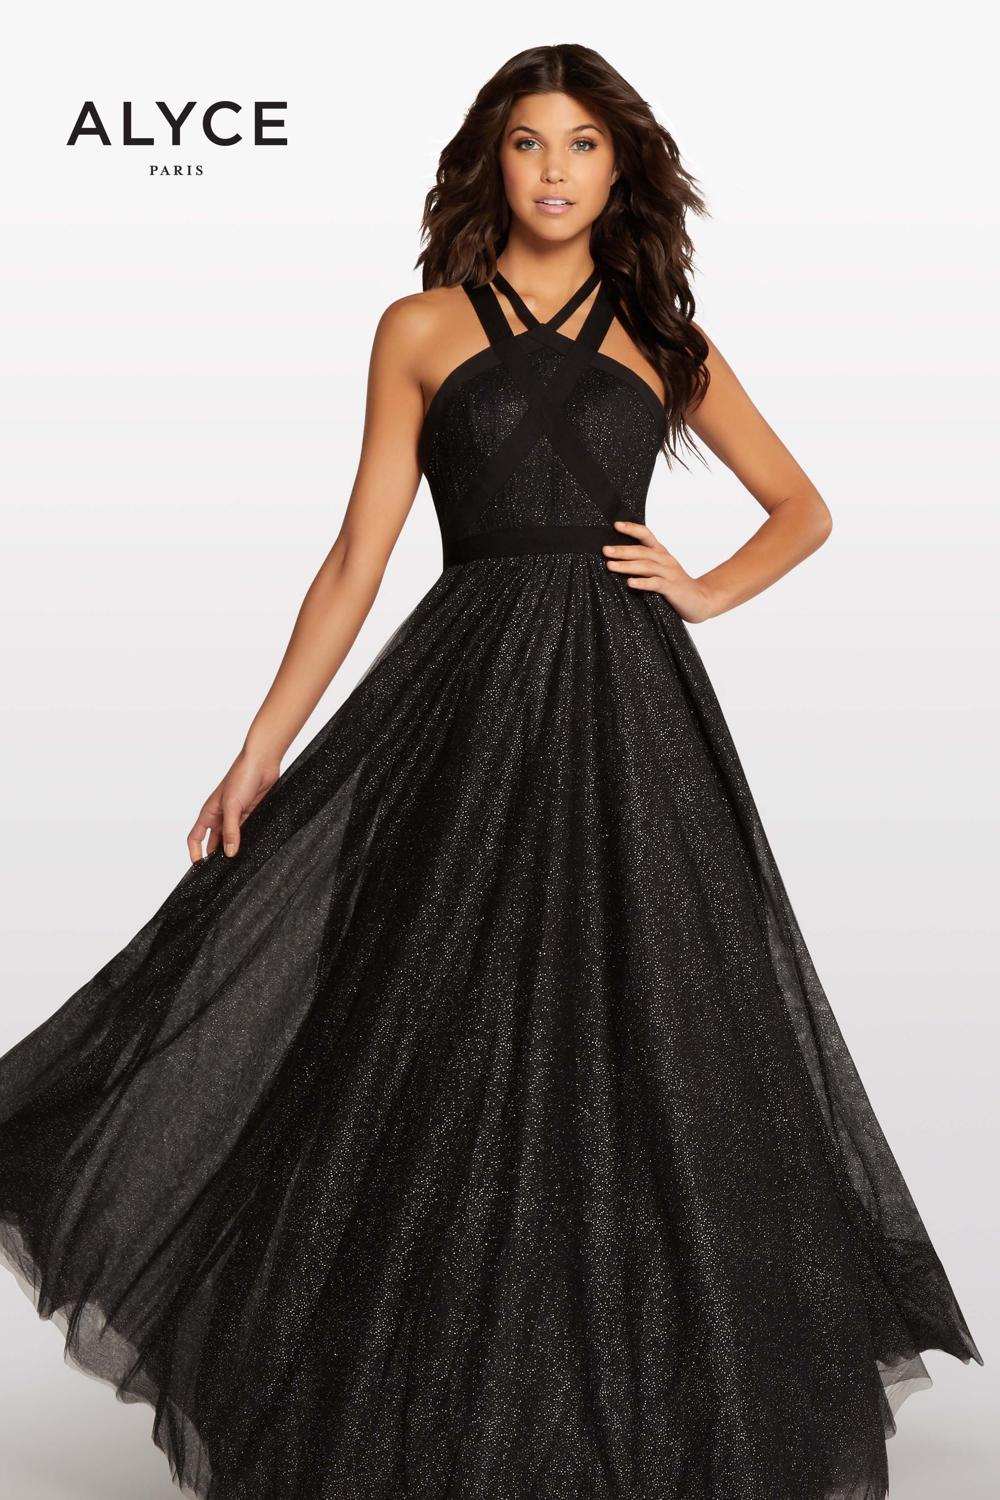 The criss-cross bandage top on this black a-line dress is unique and the subtle sparkle tulle on the skirt seals the deal on this beauty. We currently have this dress in stock and it available for ordering in different sizes.